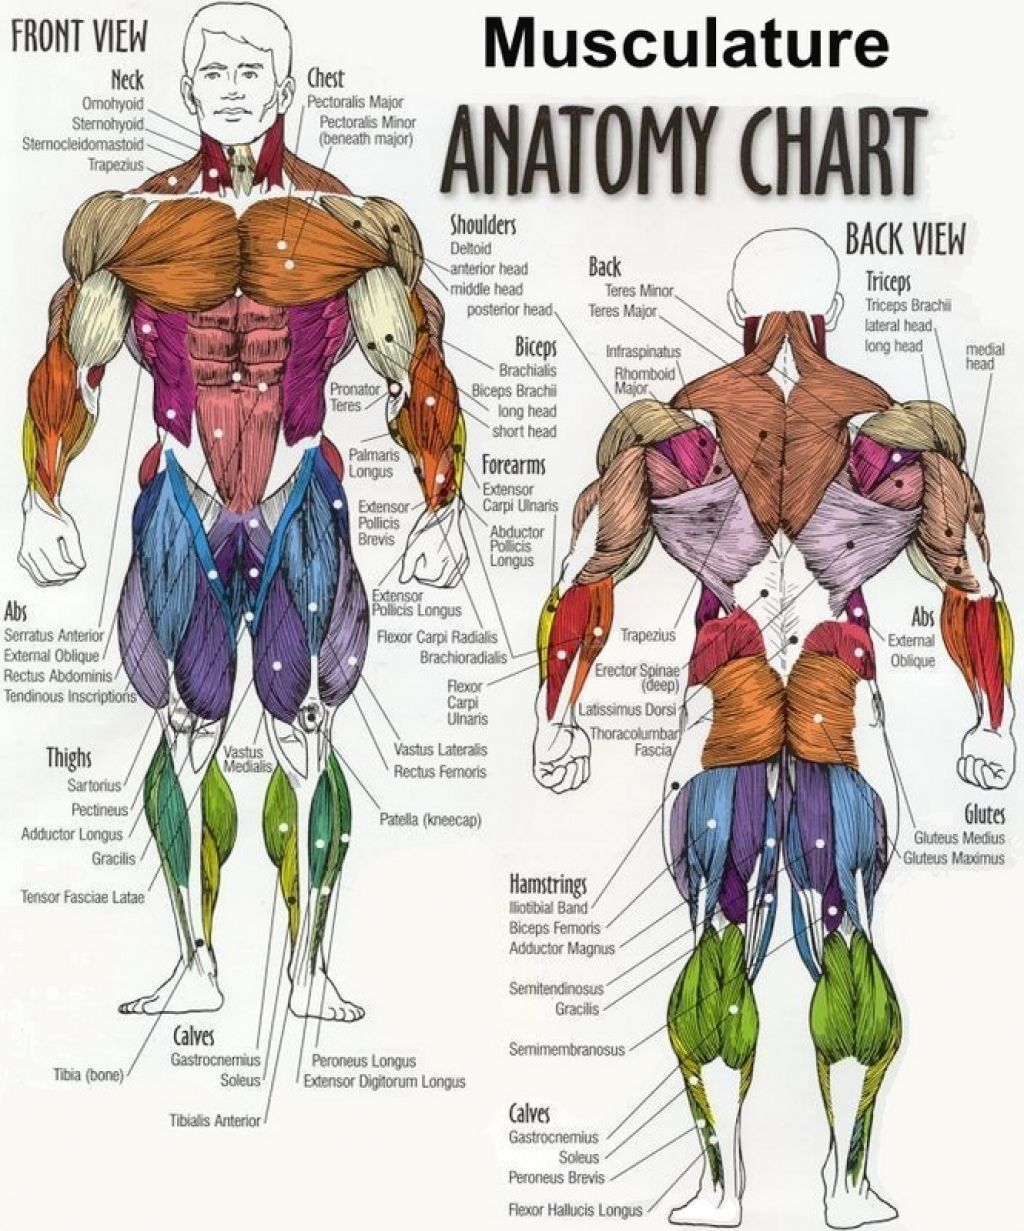 Muscles Of Human Body With Color at anatomy-body.us | anatomy ...